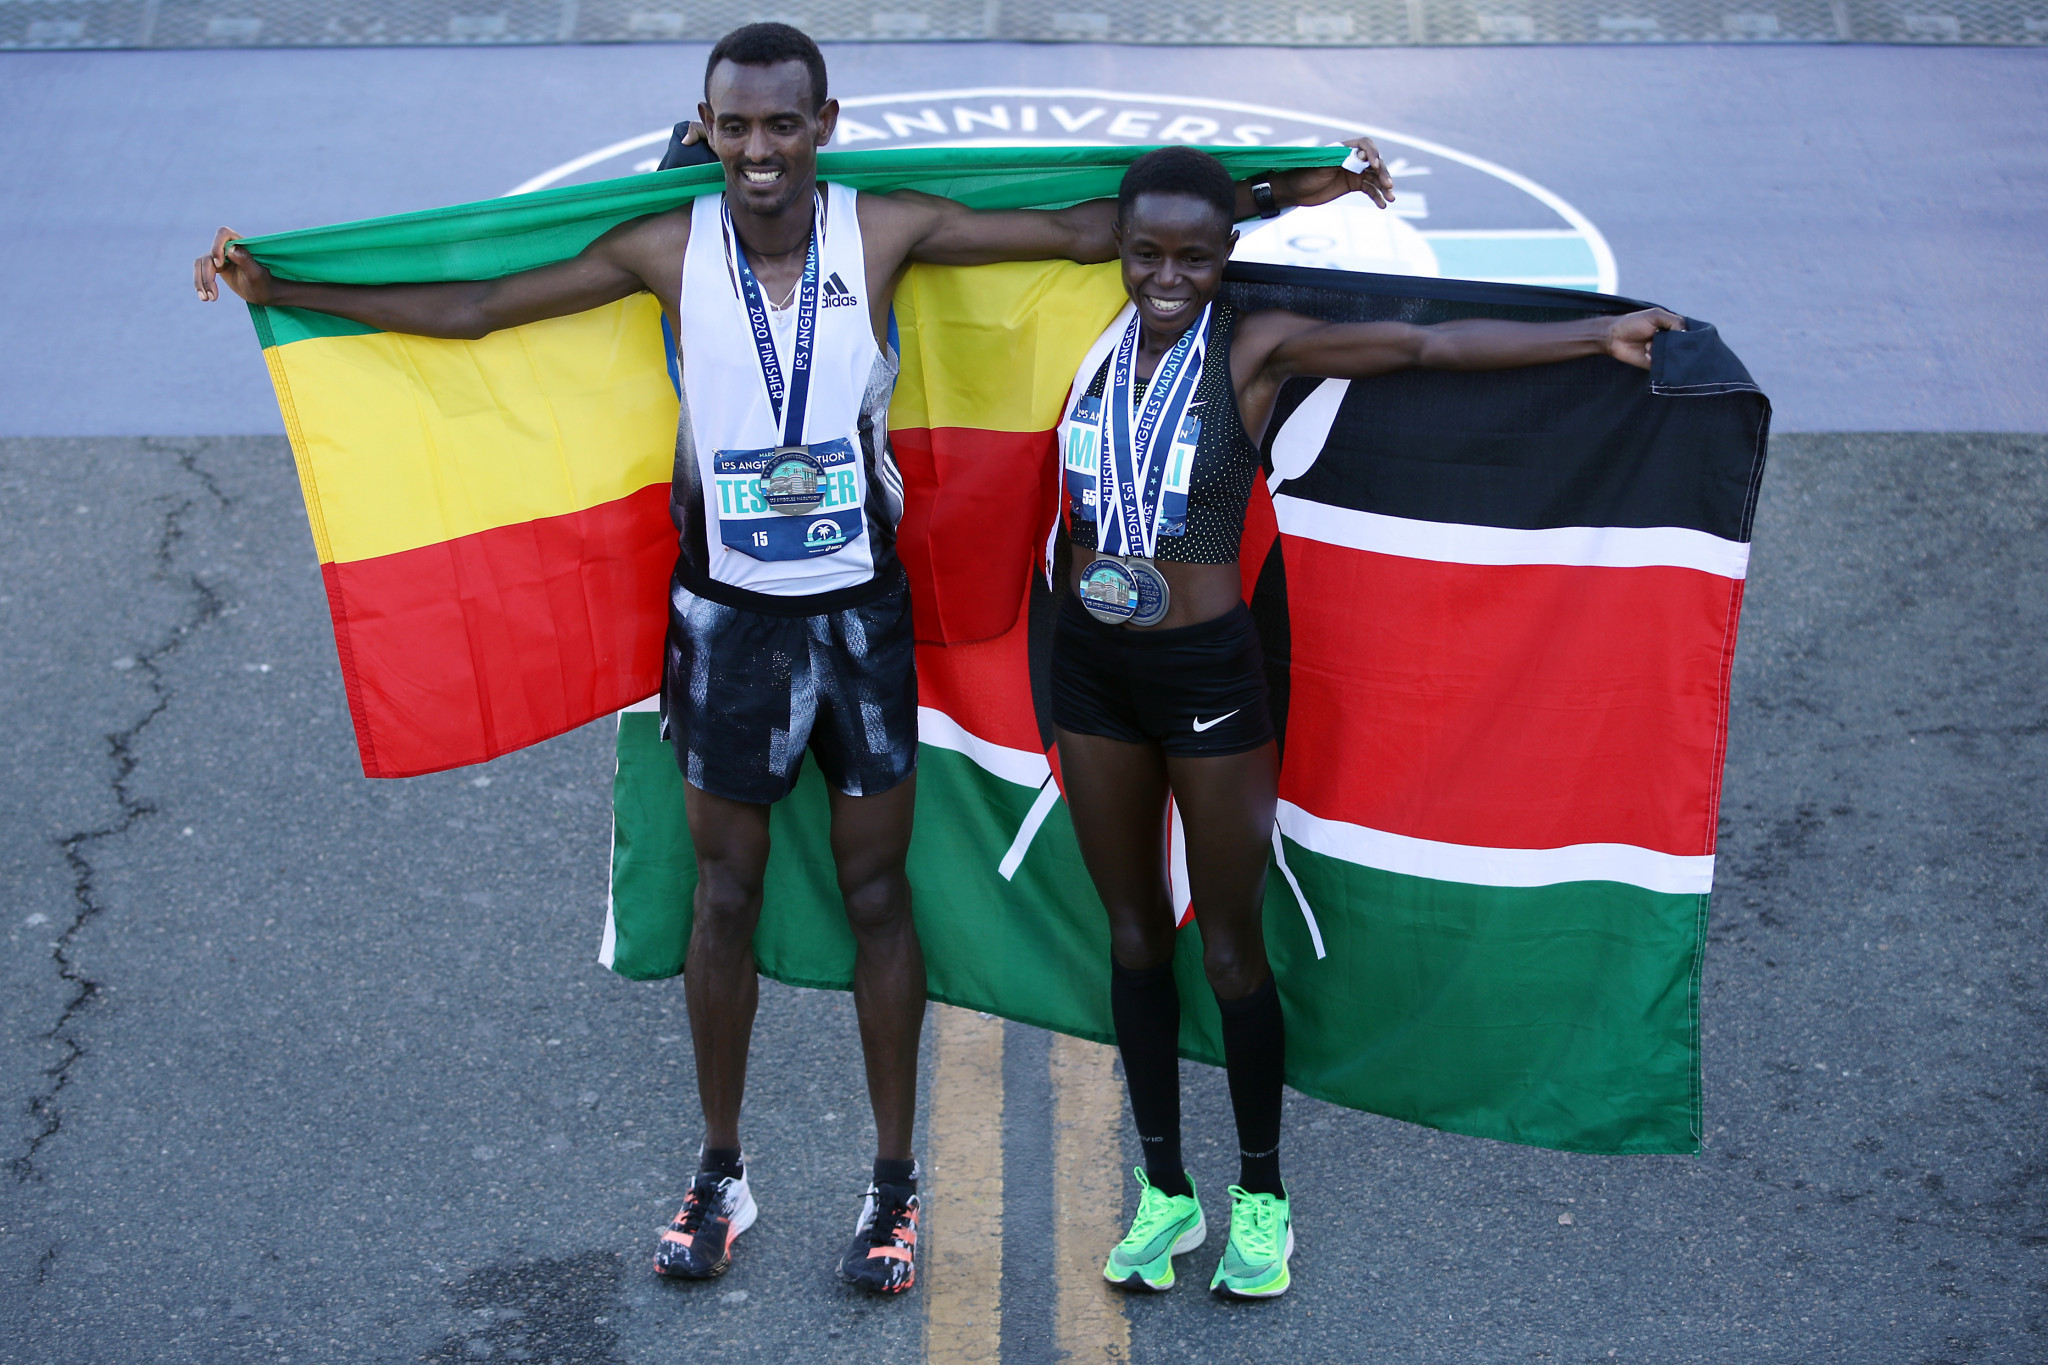 Bayelign Teshager and Margaret Muriuki were the winners of last year's Los Angeles Marathon which was held at the start of the coronavirus pandemic ©Getty Images